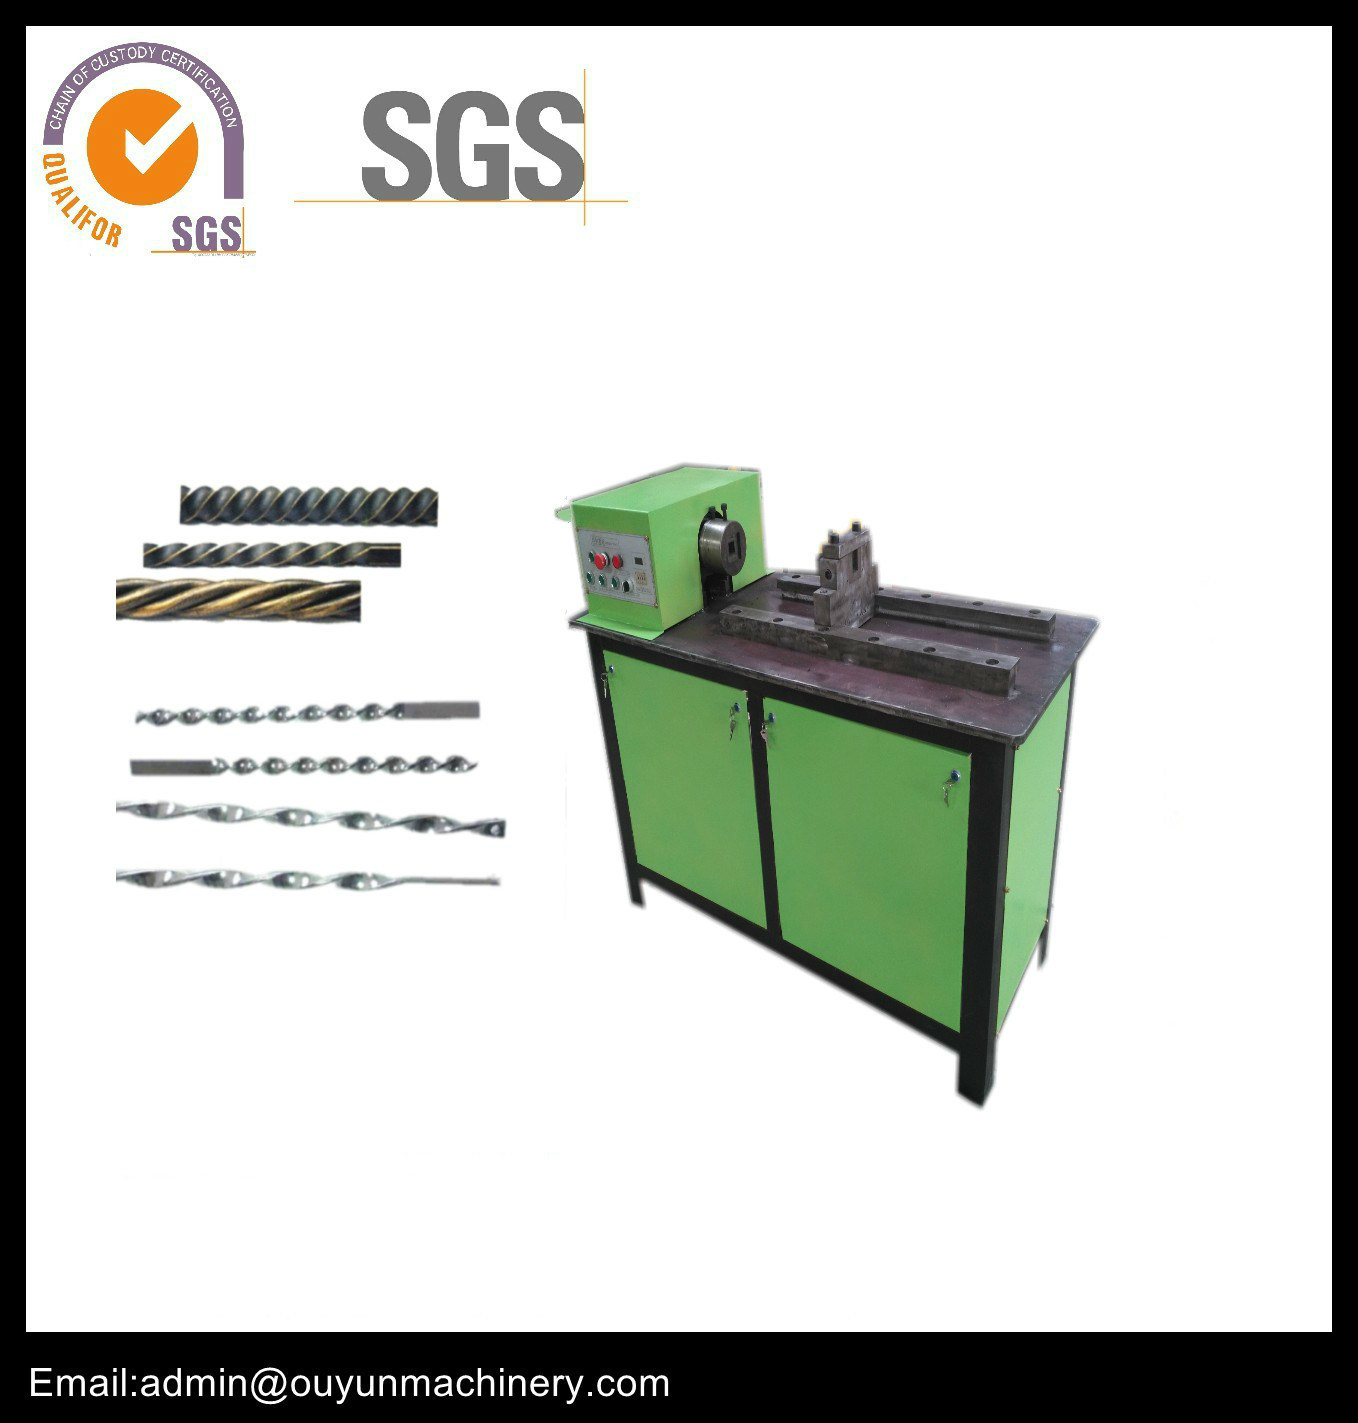 Wrought Iron Thread Twisting Machine for Ornamental Iron Work pictures & photos